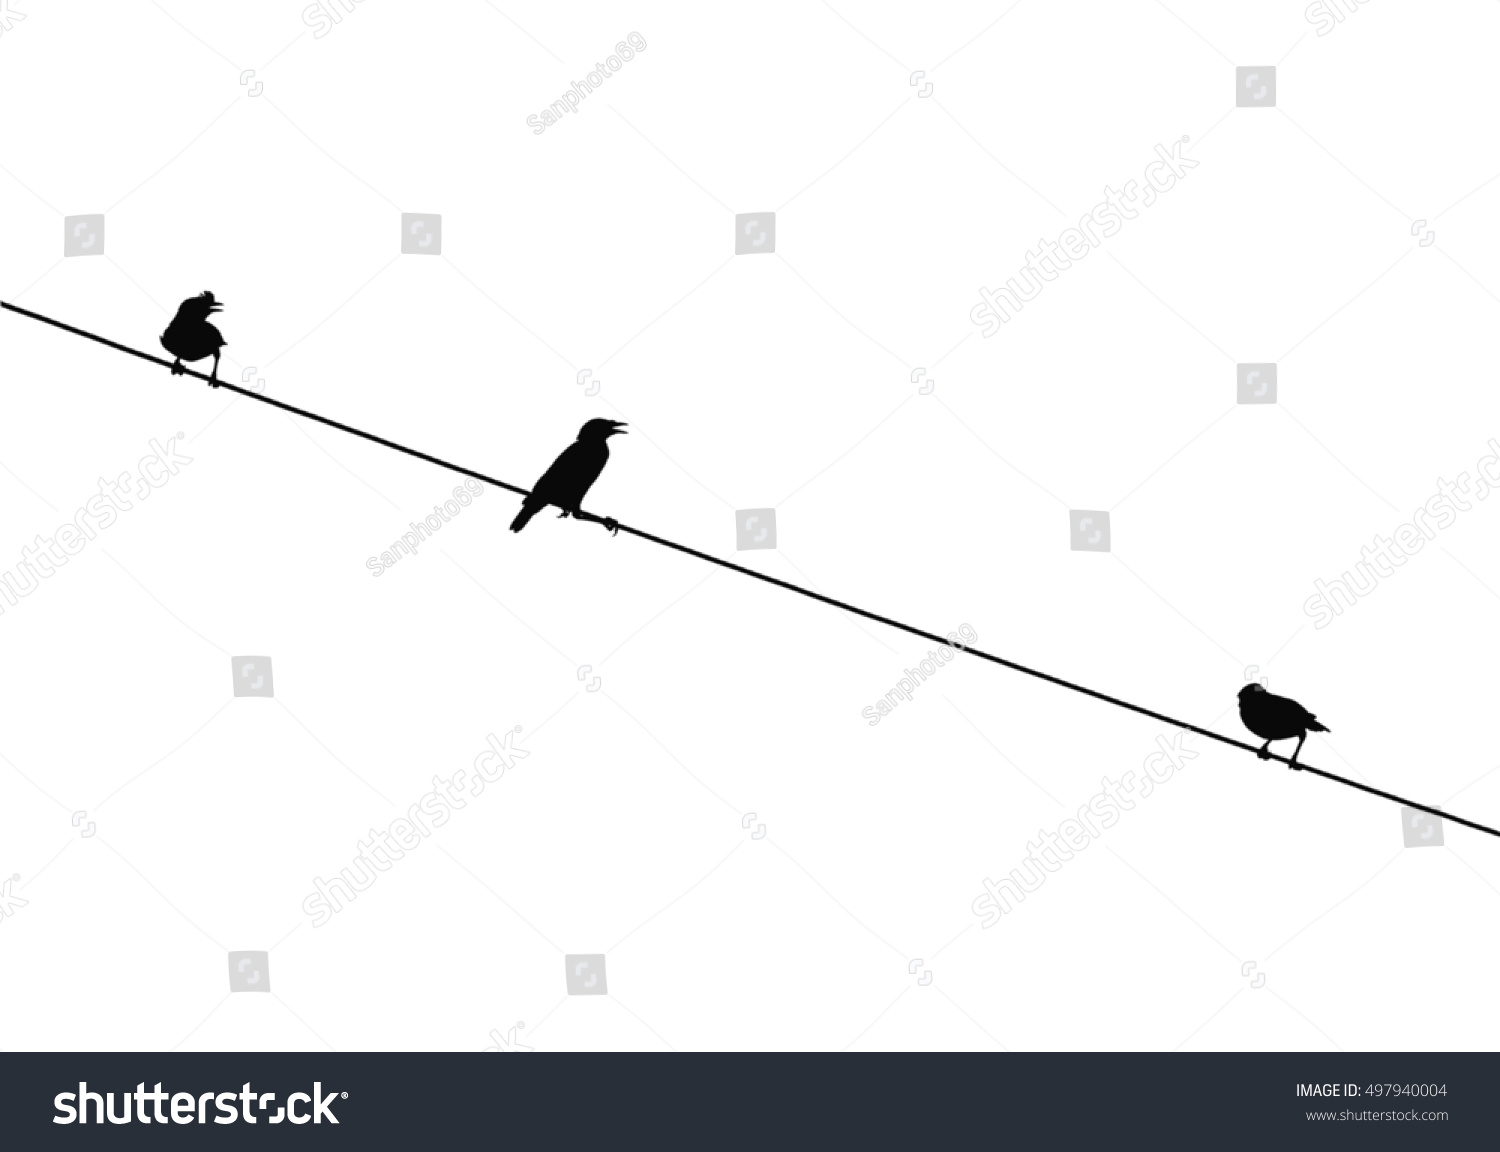 Silhouette Bird On Wire White Background Stock Photo (Edit Now ...